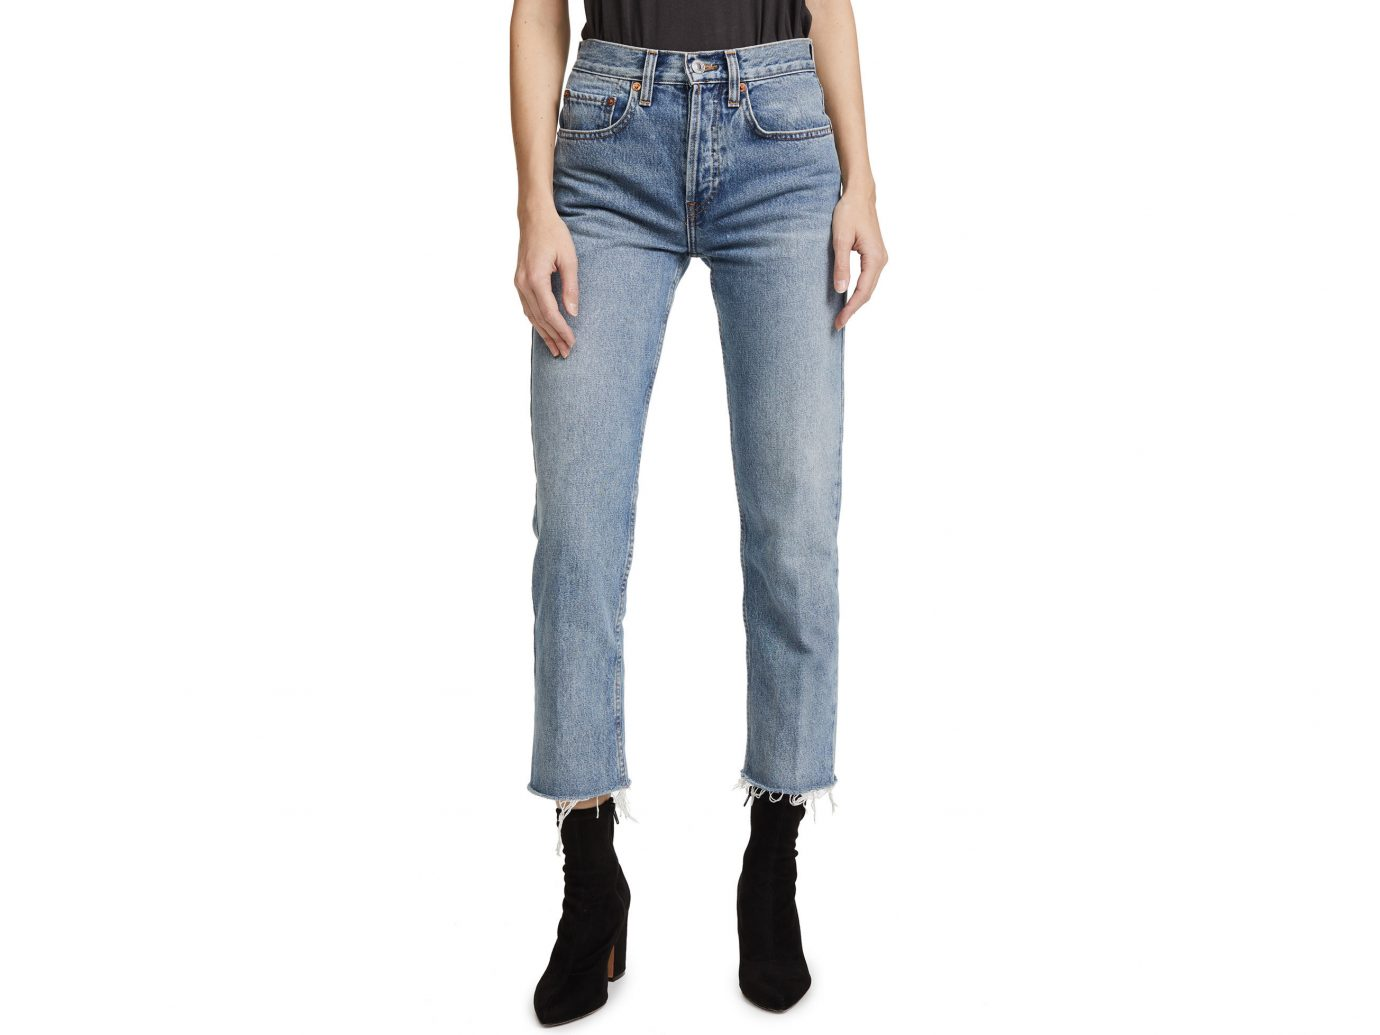 Outdoors + Adventure Trip Ideas jeans person denim clothing standing trouser posing trousers waist pocket